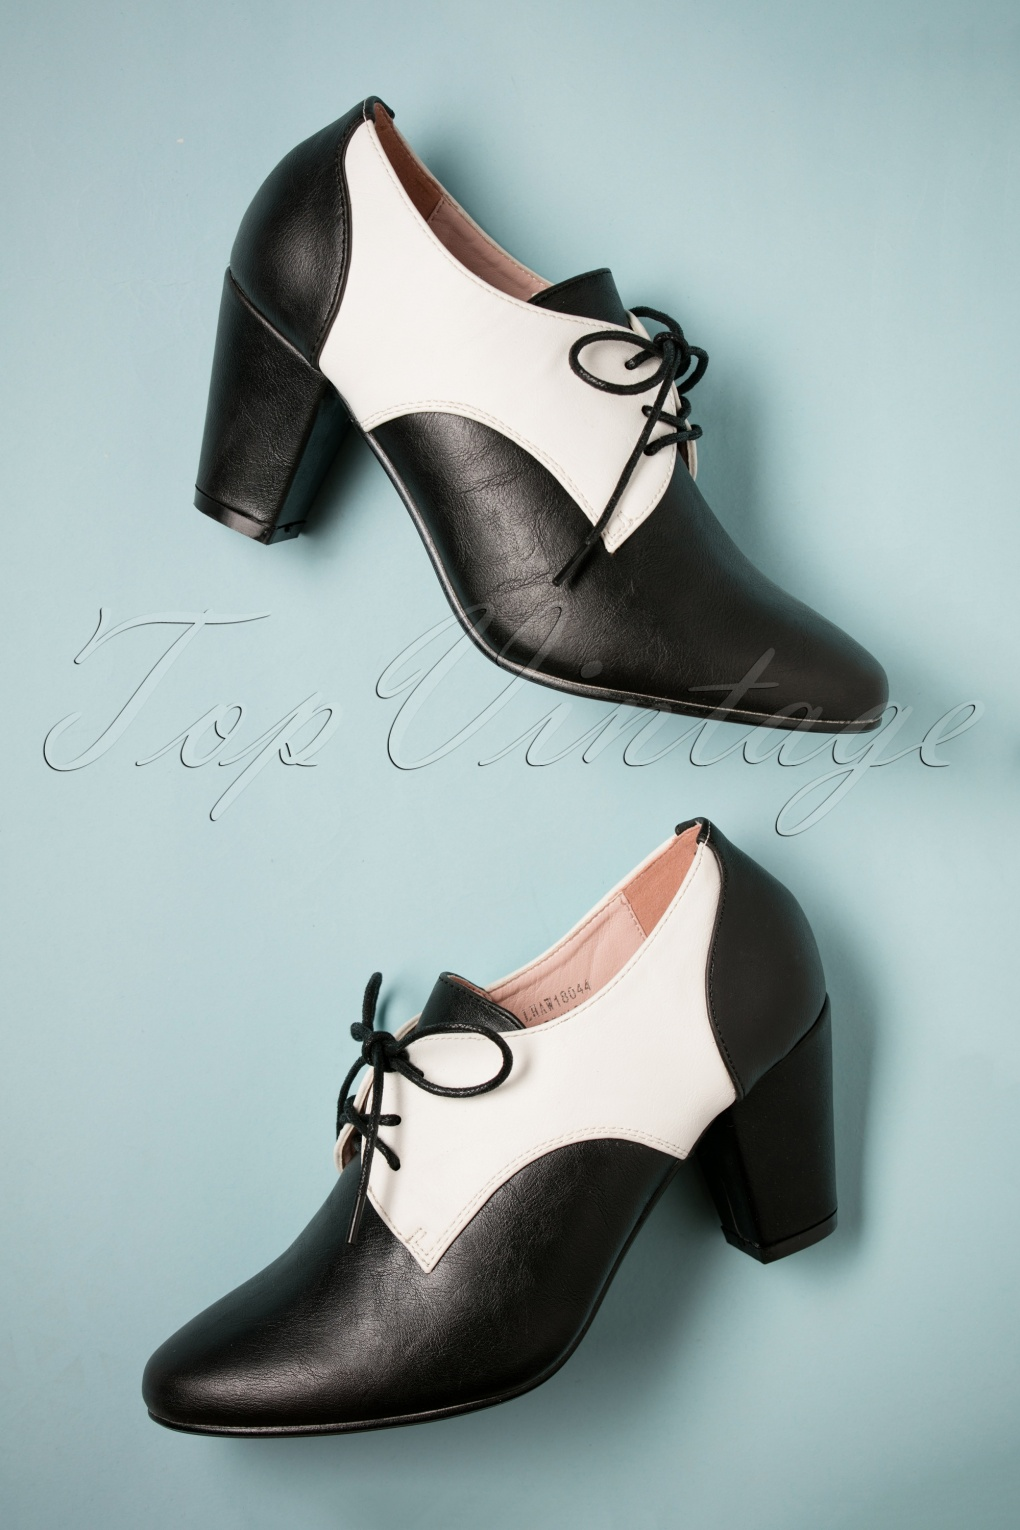 1950s Style Shoes | Heels, Flats, Saddle Shoes 40s Vera Shoe Booties in Black and Ivory £46.69 AT vintagedancer.com